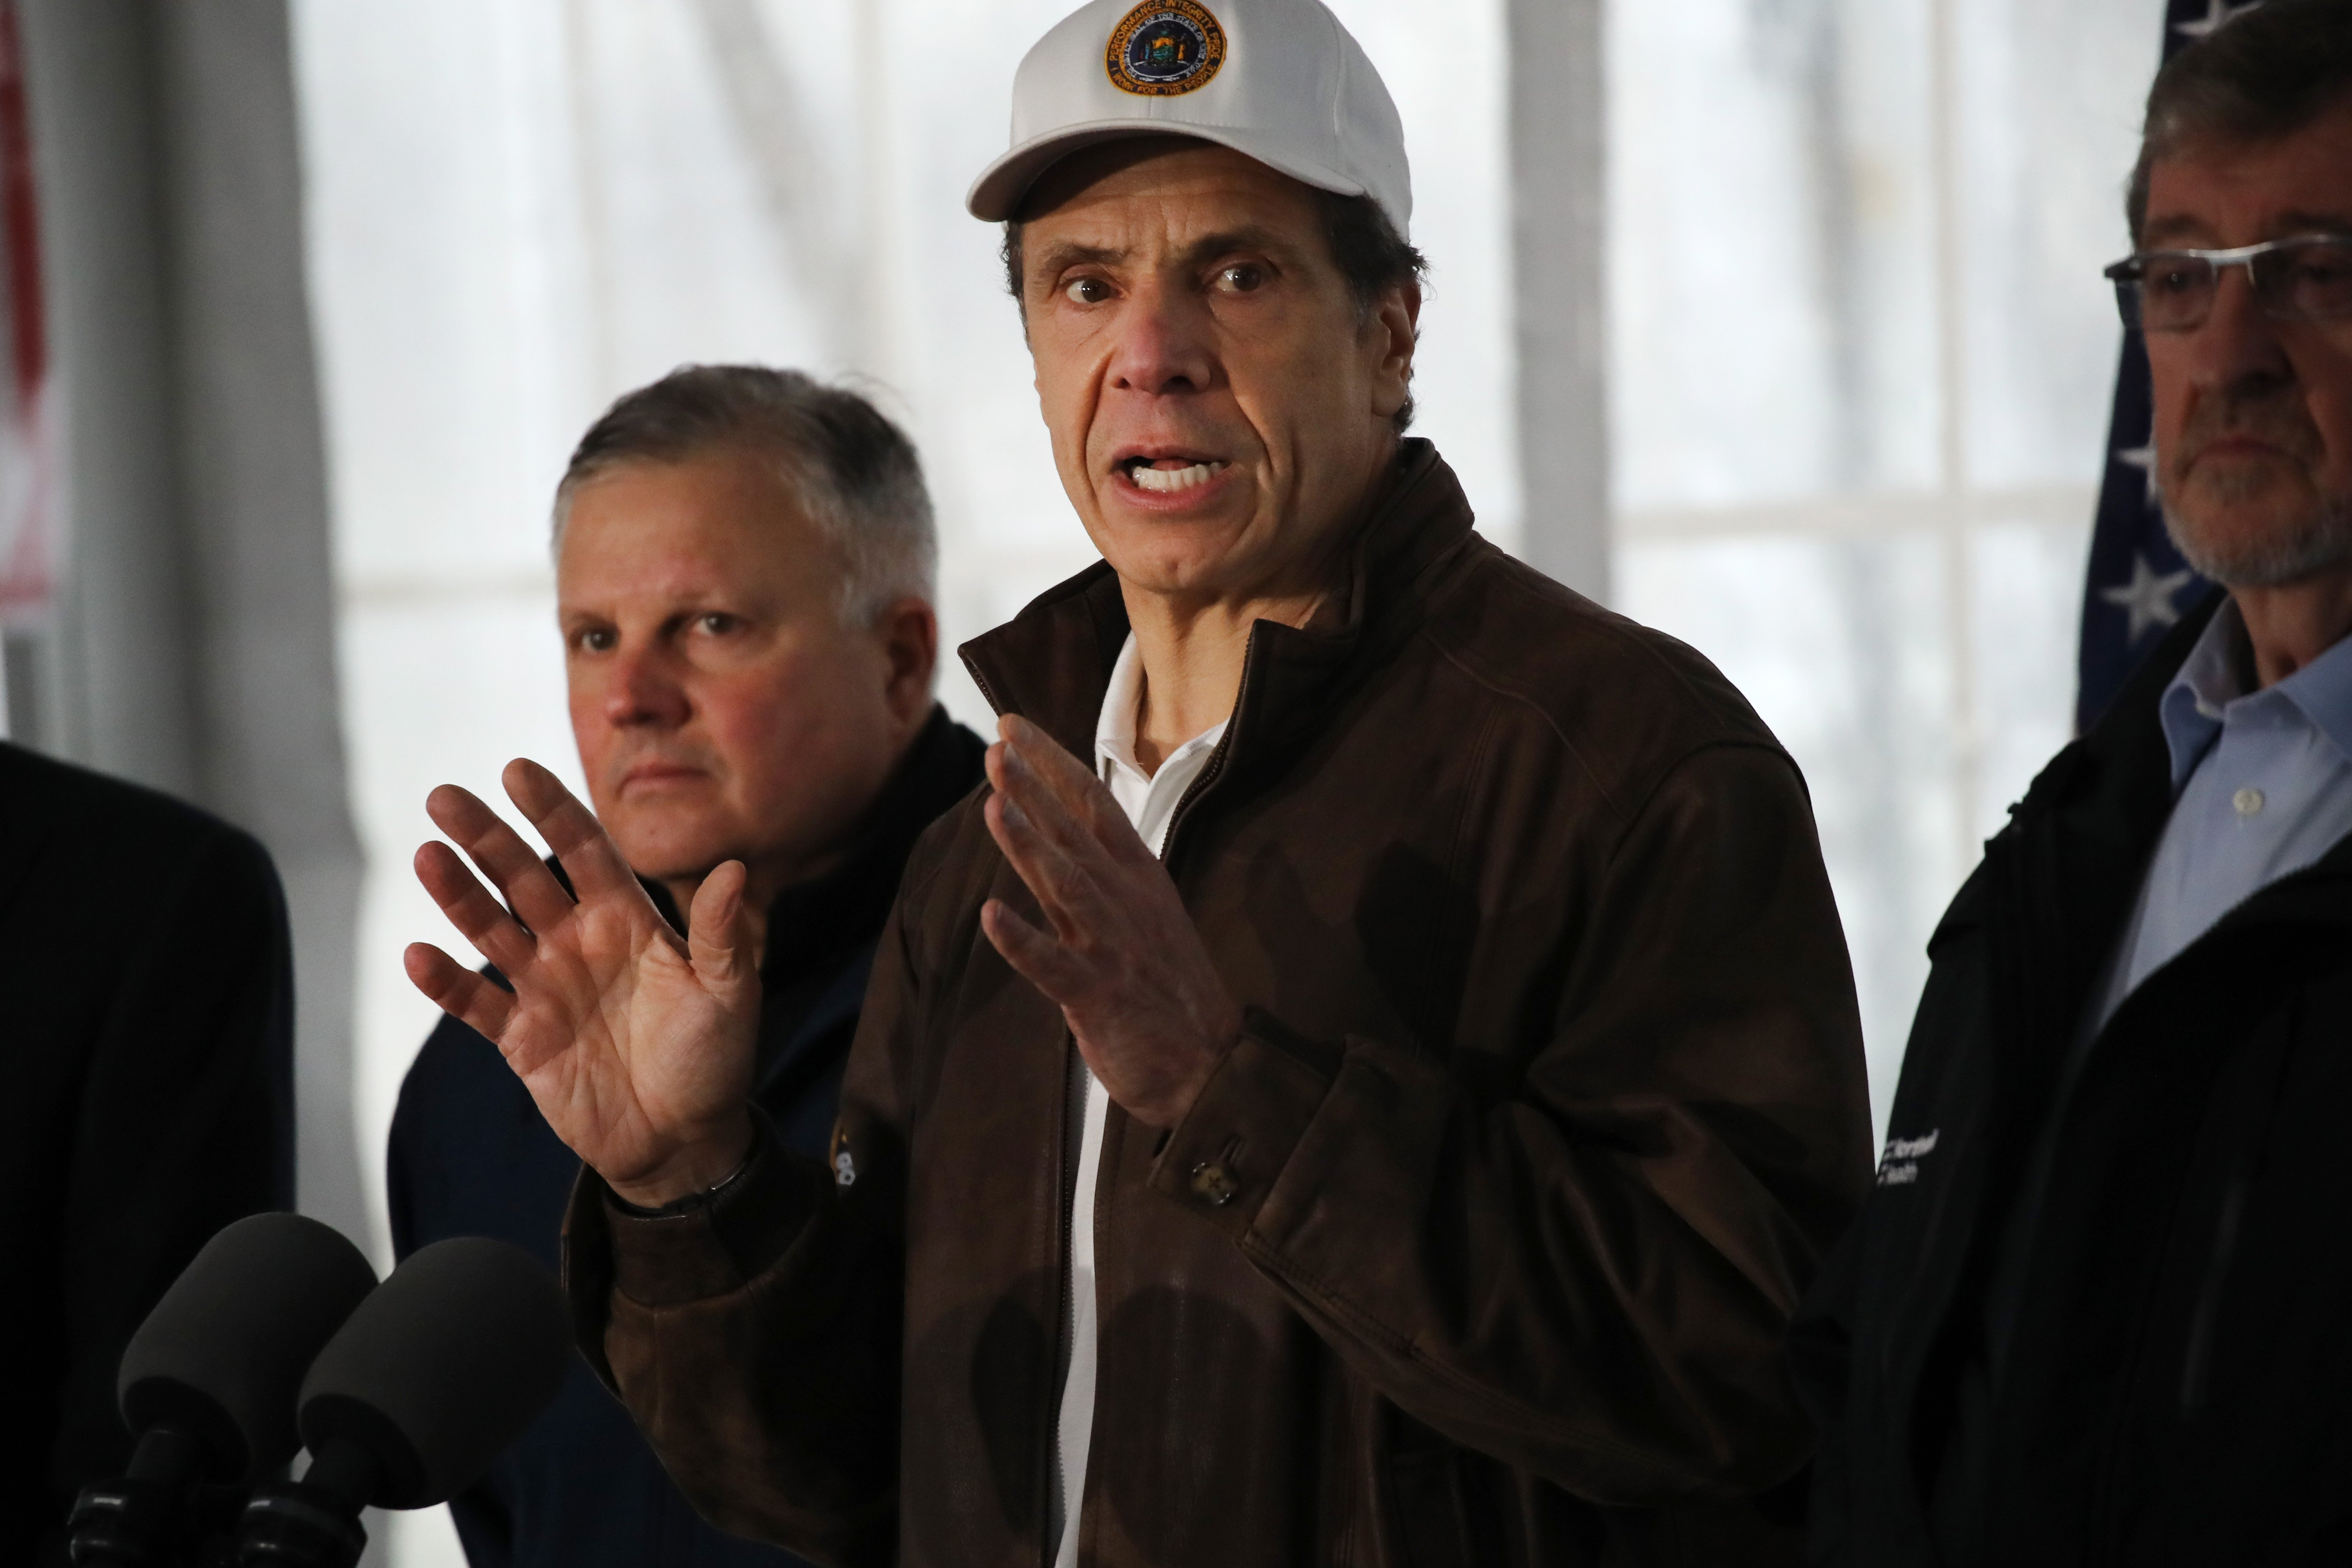 "NEW ROCHELLE, NEW YORK - MARCH 13: New York Governor Andrew Cuomo speaks to the media and tours a newly opened drive through COVID-19 mobile testing center on March 13, 2020 in New Rochelle, New York. The center serves all parts of Westchester County and will test up to 200 people today, growing to up to 500 people per day in the coming days. New Rochelle, a city just north of New York City, has become the state's largest source of coronavirus infections, prompting Governor Andrew Cuomo to implement the one mile radius ""containment area"" as the nation sees a daily increase in the number of virus cases. (Photo by Spencer Platt/Getty Images)"